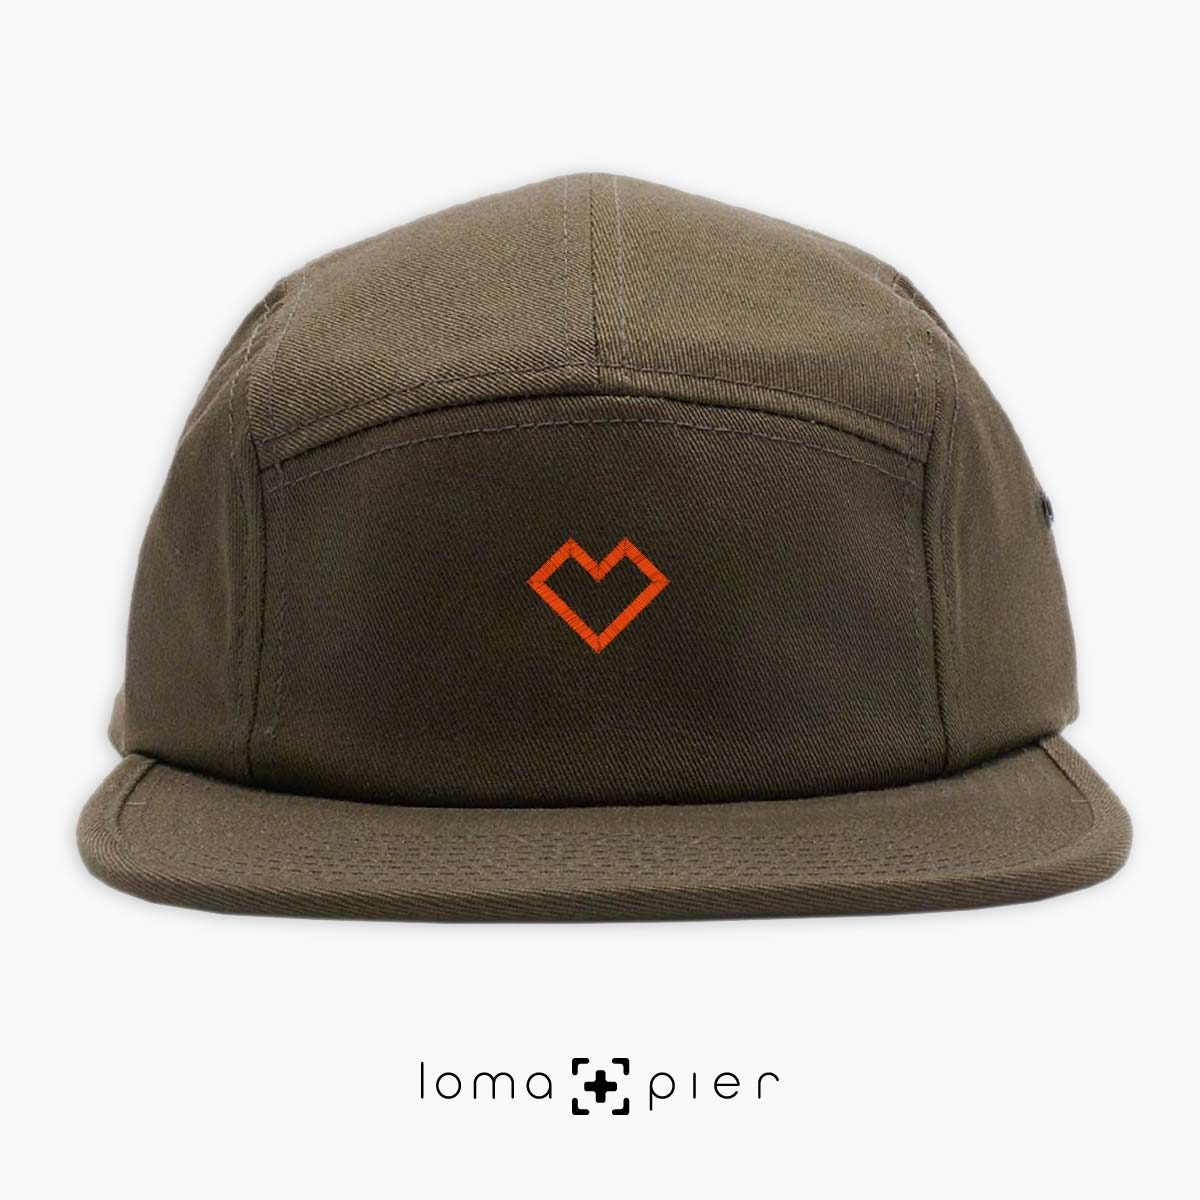 EDGY HEART typography embroidered on an olive green cotton 5-panel hat with orange thread by loma+pier hat store